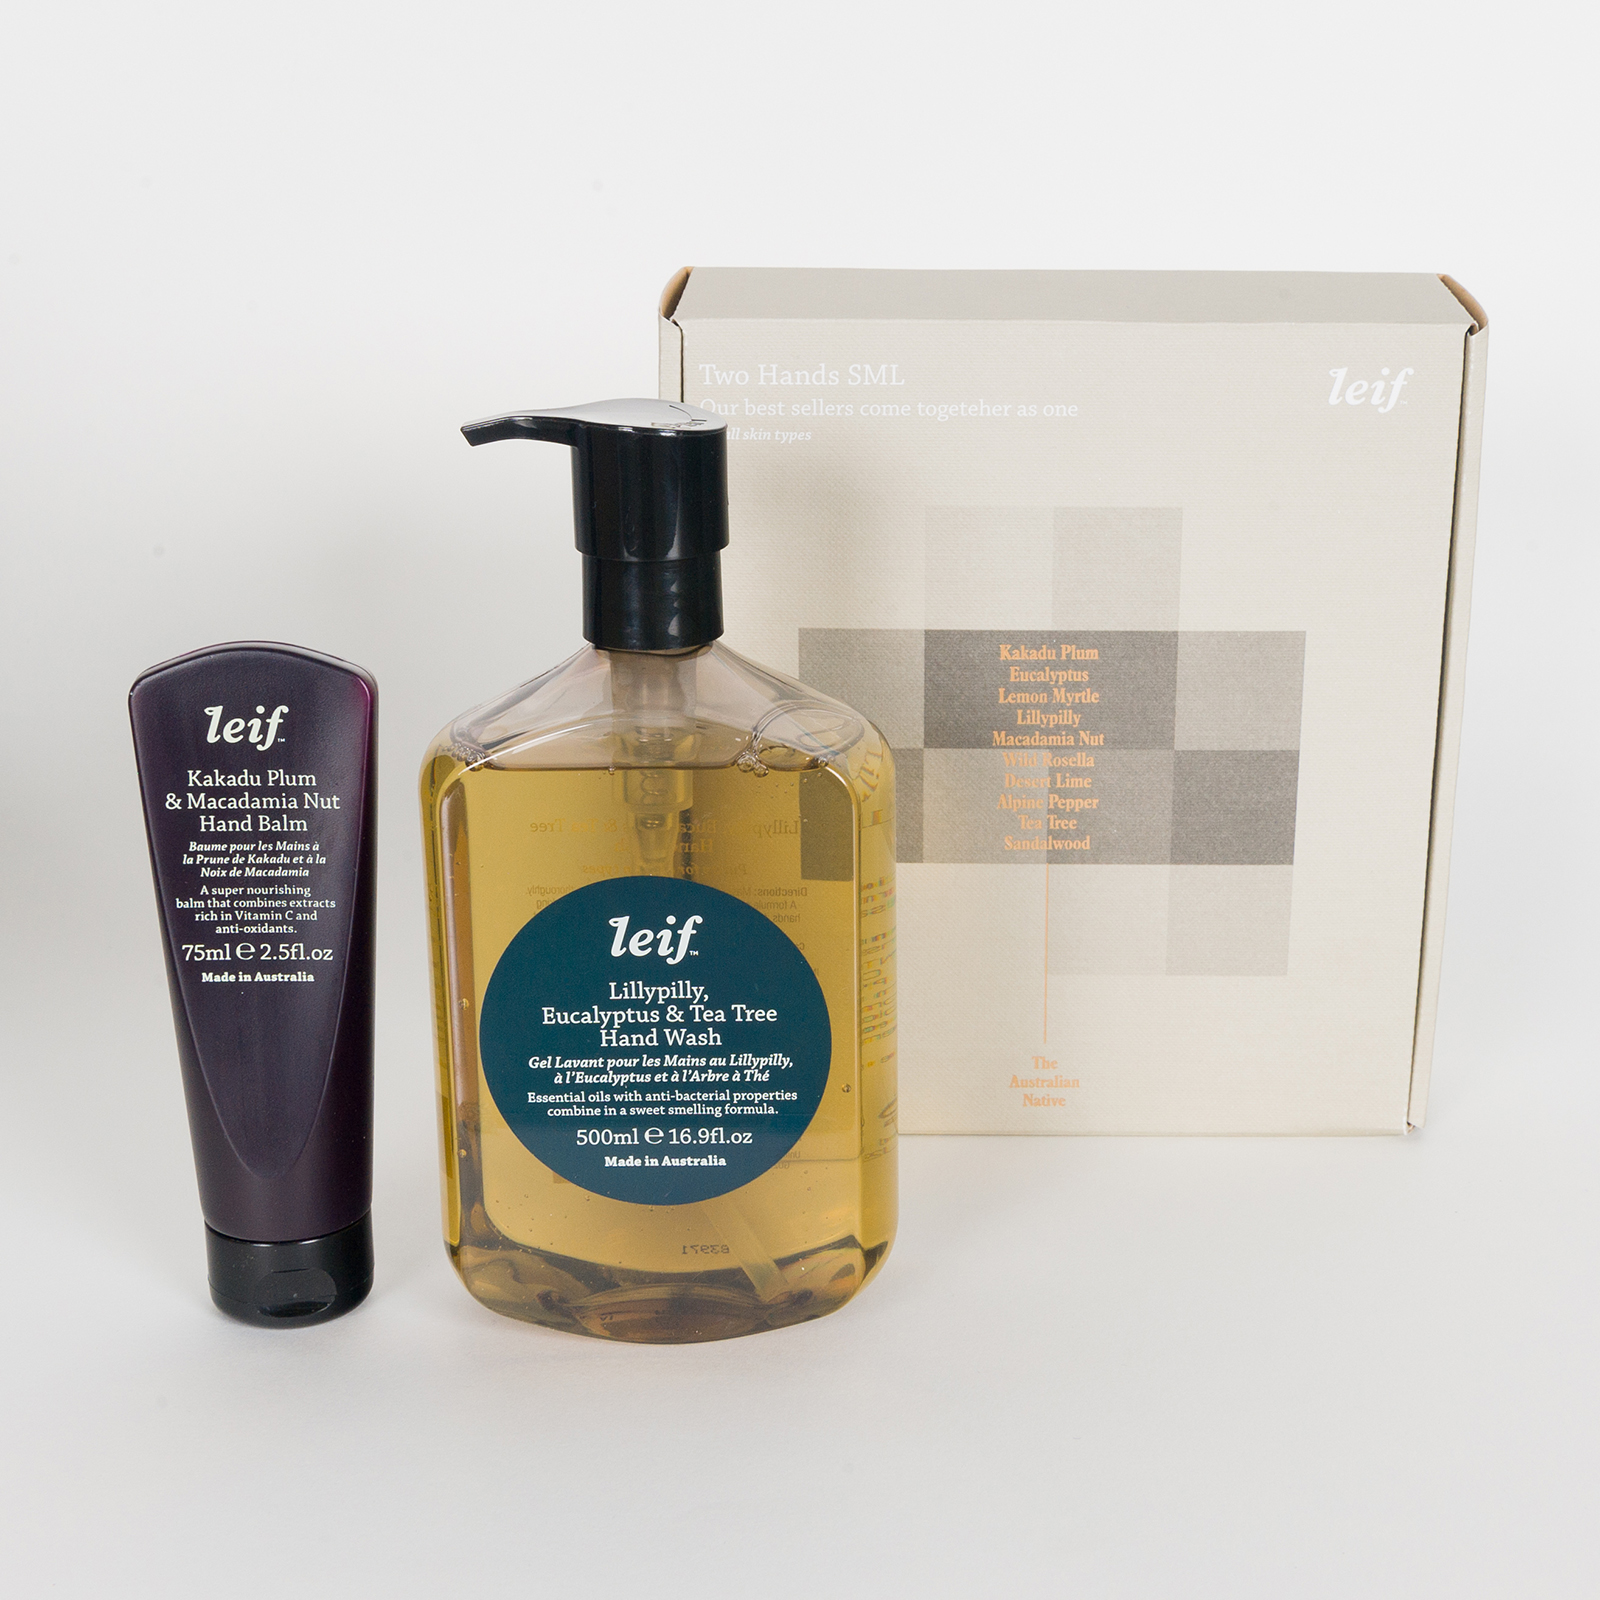 Two-Hands-Handwash-Duo-Gift-Box-by-Leif-03